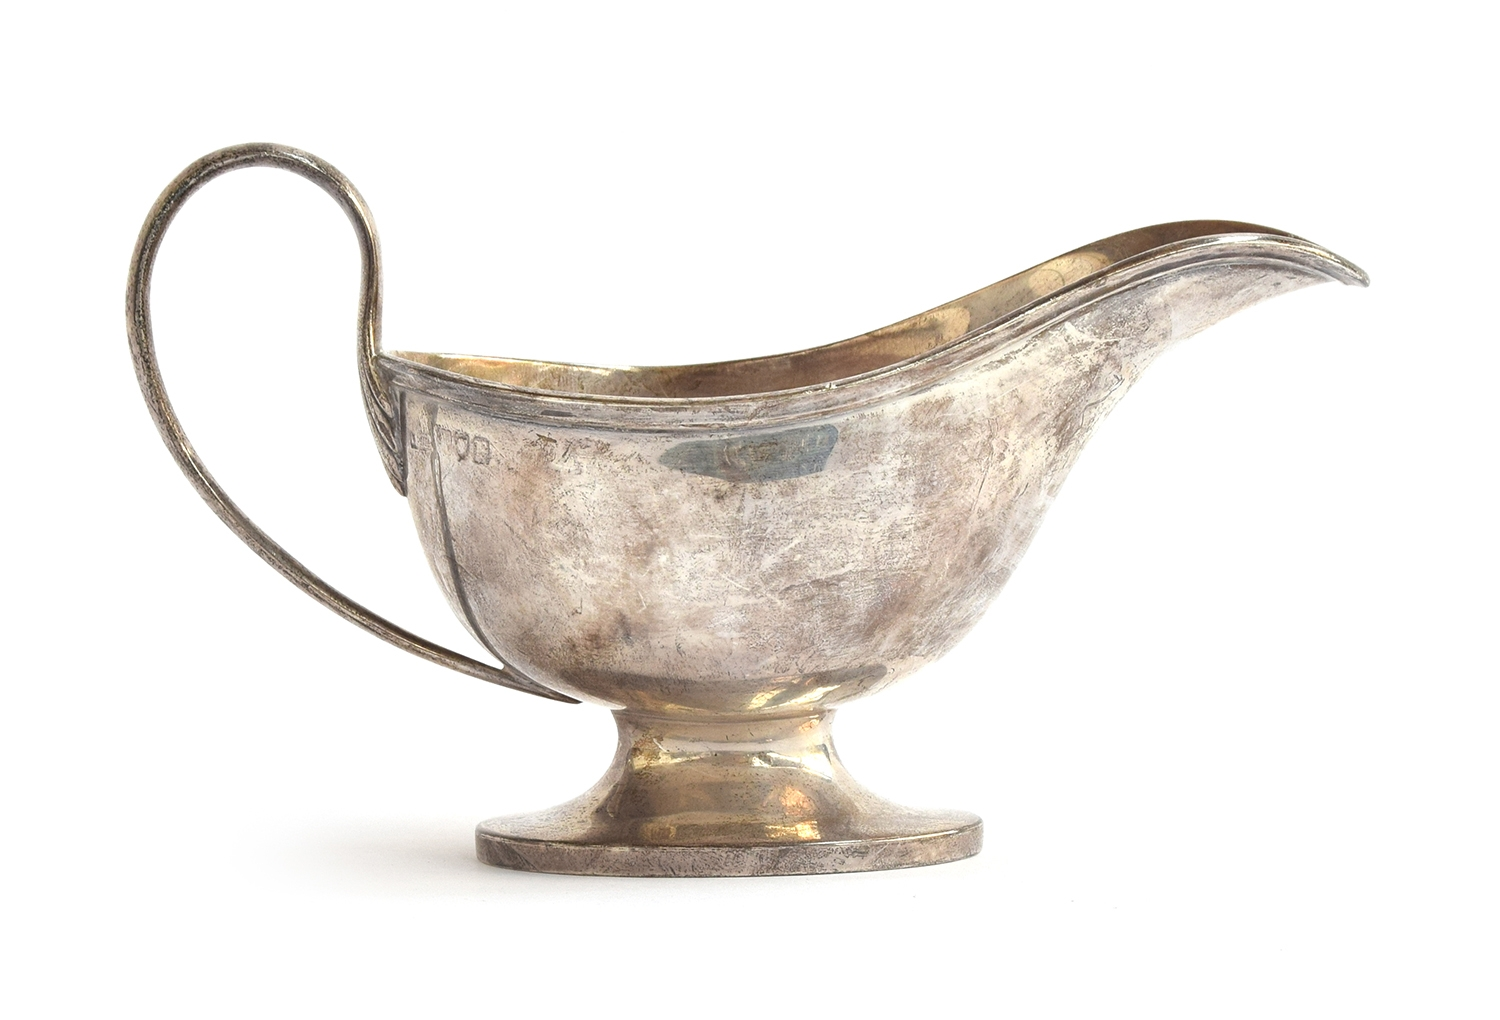 A large silver sauce boat by Asprey & Co, London 1912, 6oz - Image 2 of 2